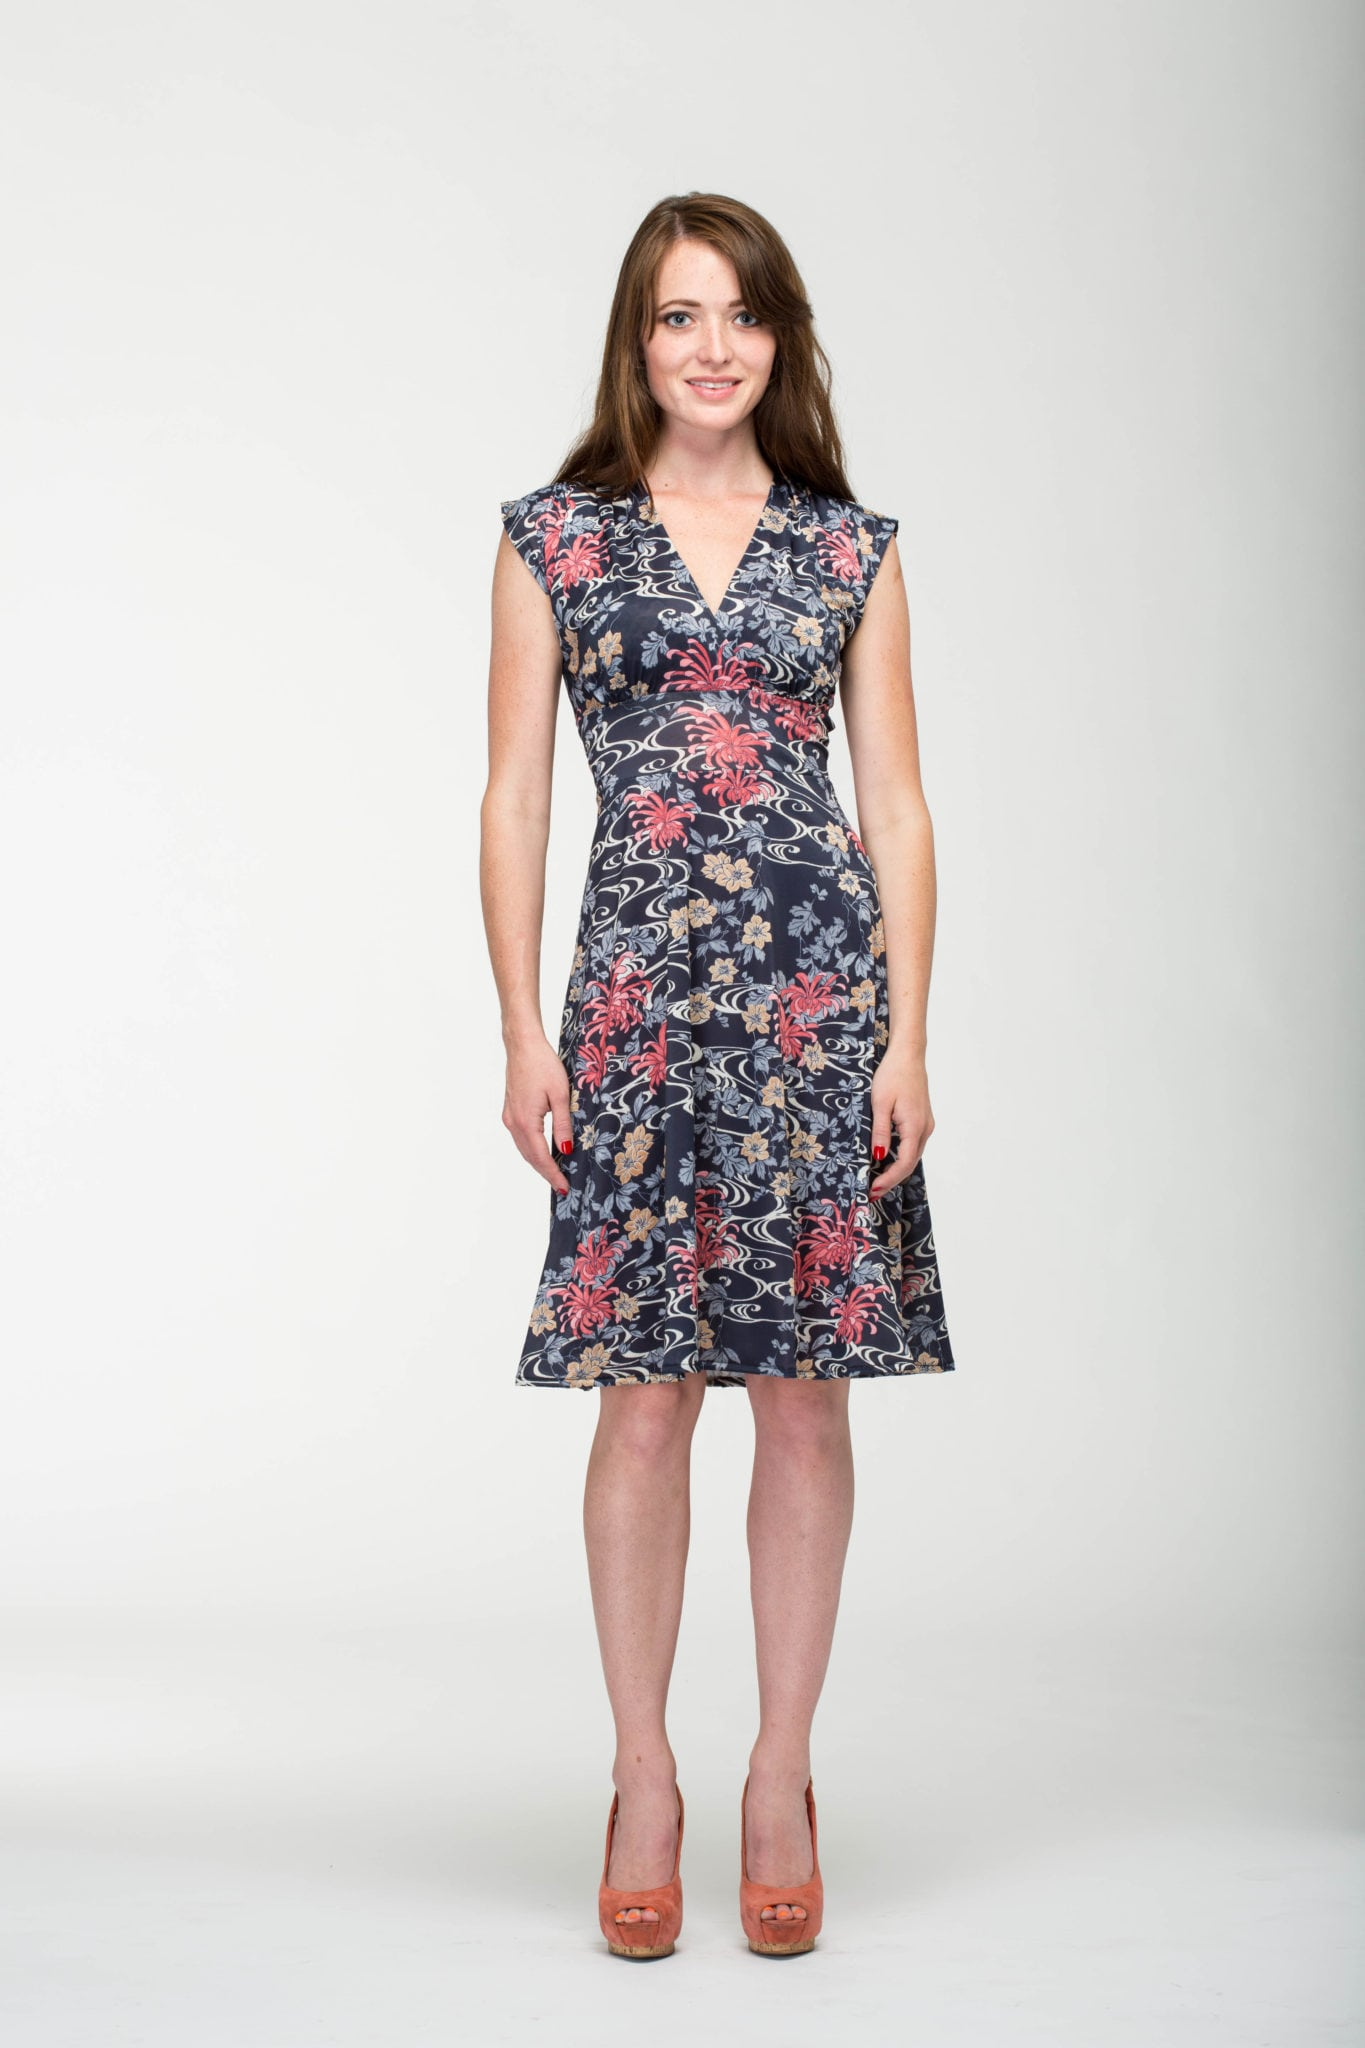 Veronica Lake Swirl Flower Dress